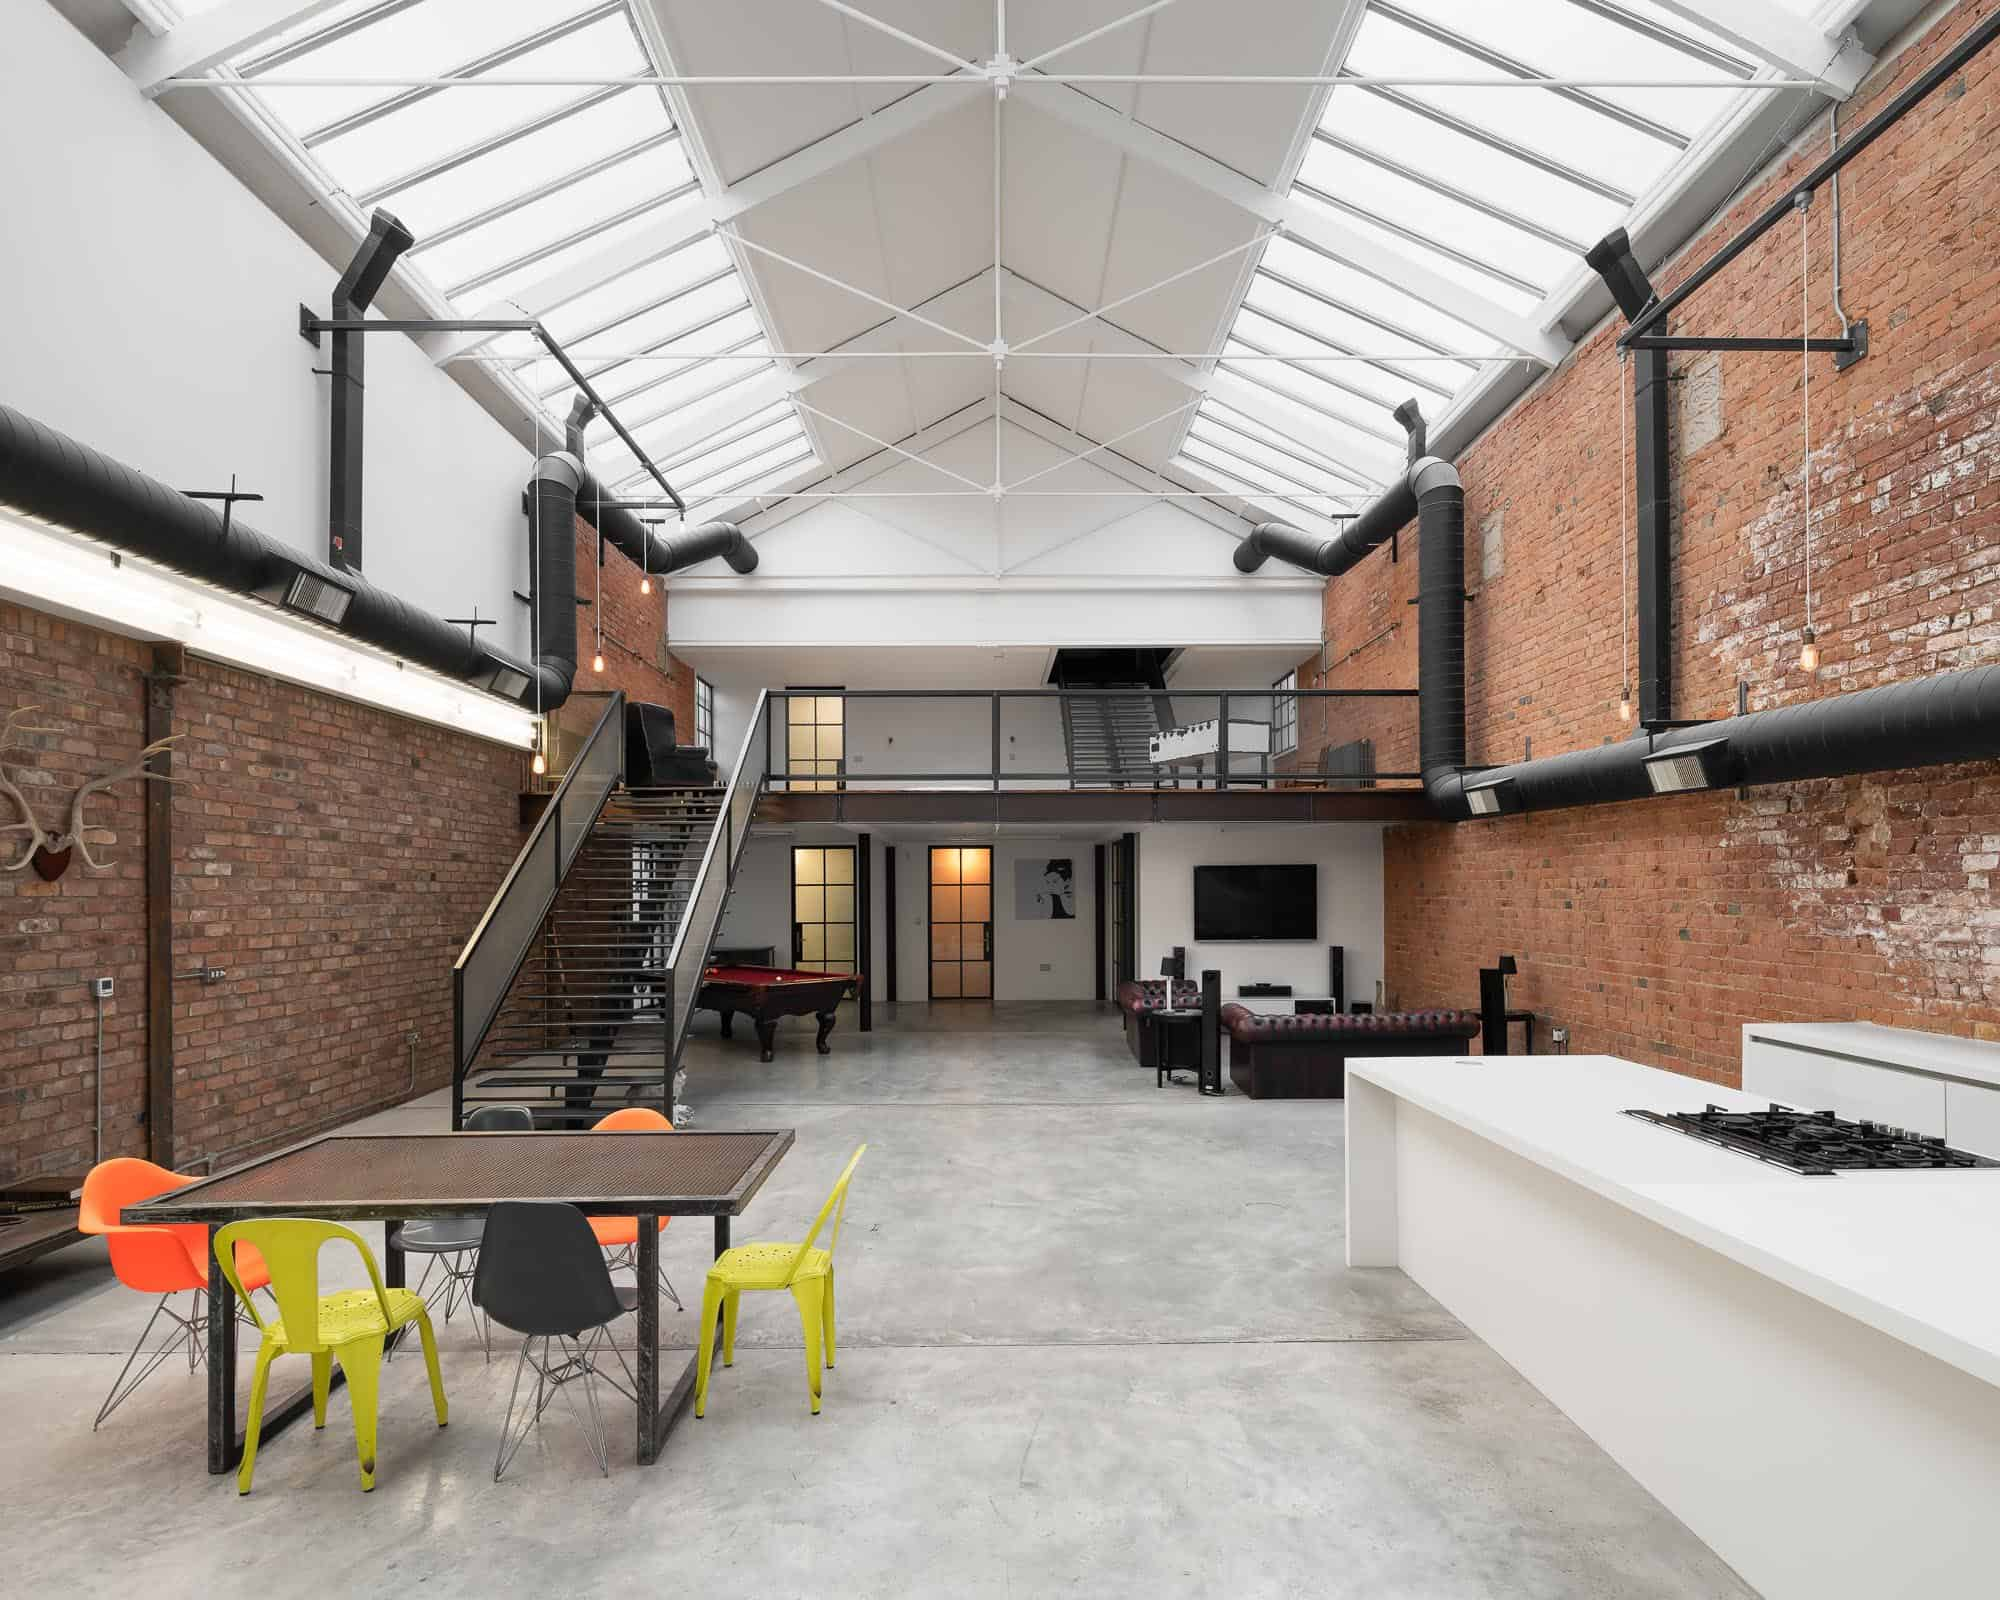 Bedford Loft CV32 - A converted warehouse in Leamington Spa. Concrete floors, exposed brick walls, and flooded with natural light - The Location Guys